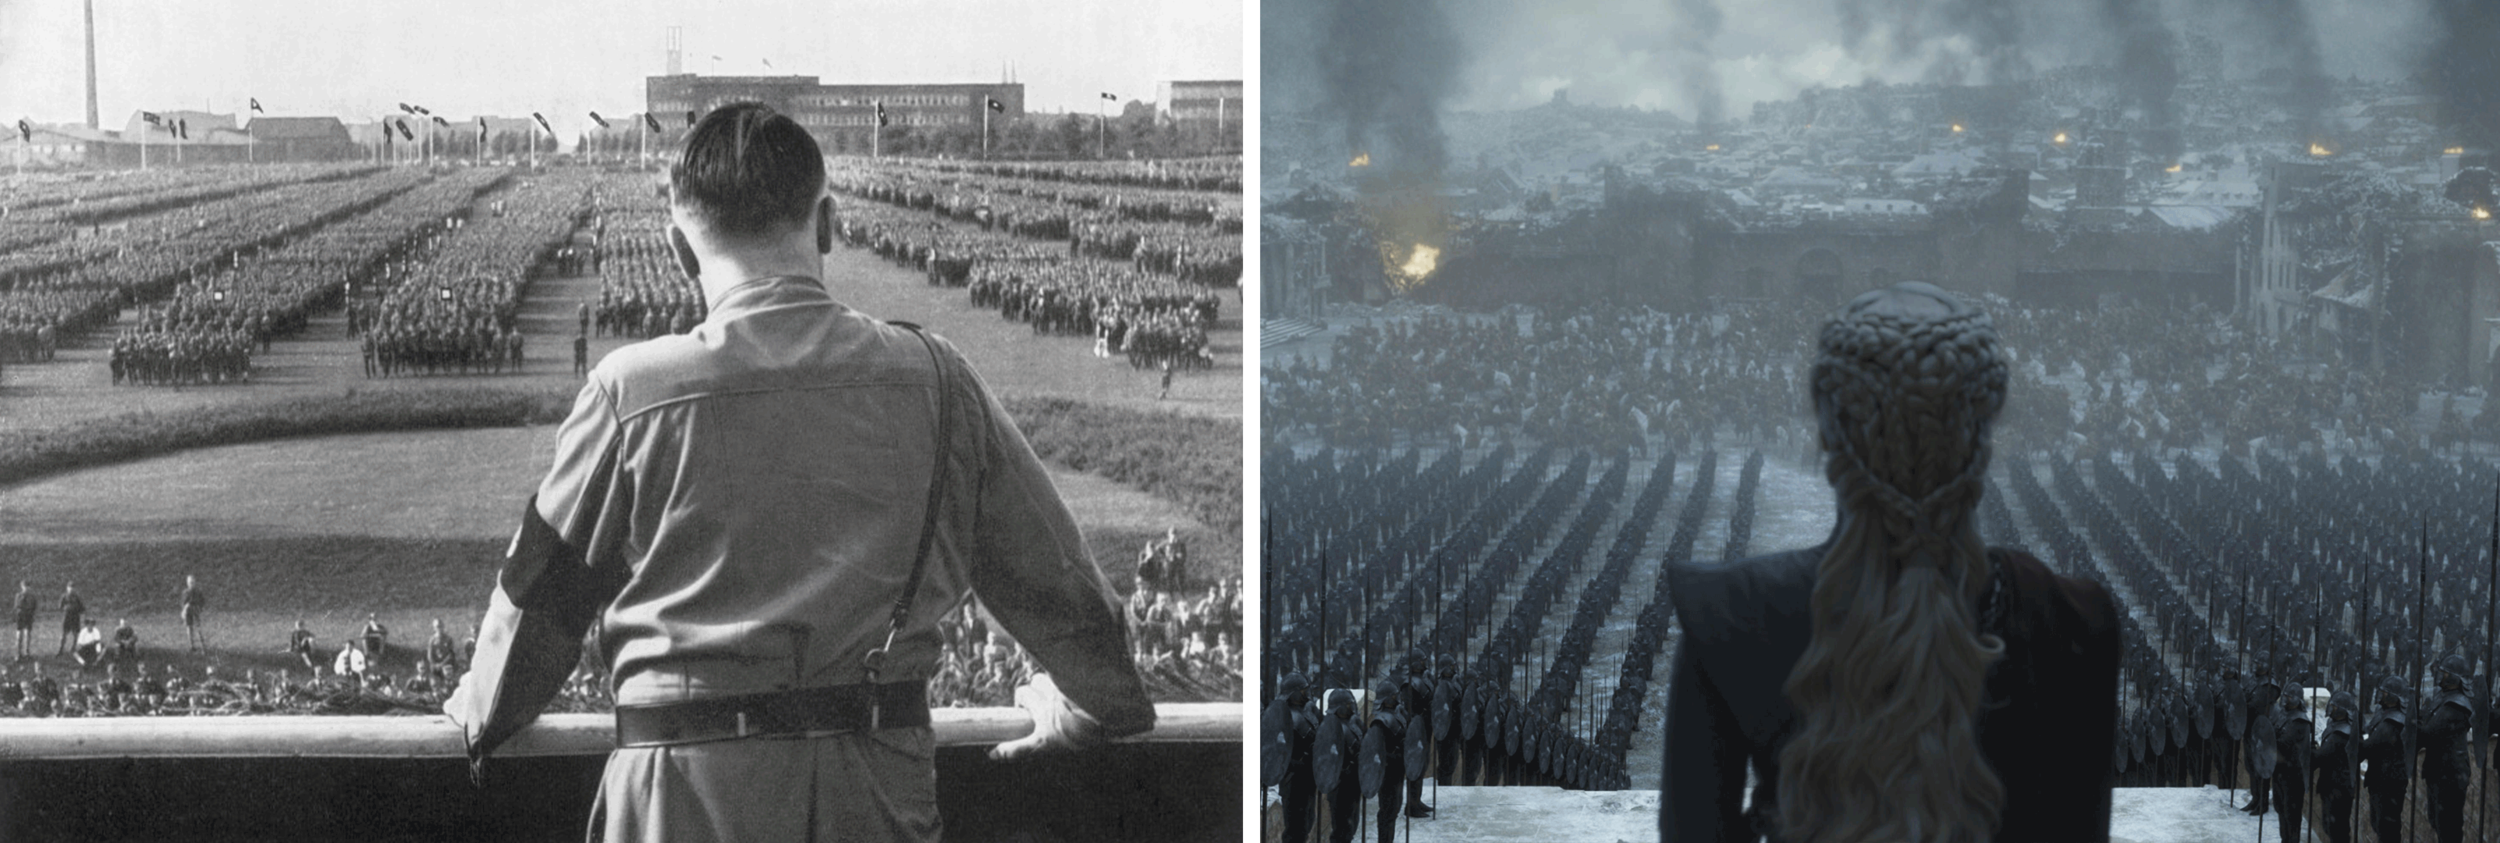 Hitler and the Nazi army (left), Daenerys and the Dothraki and Unsullied armies (right)